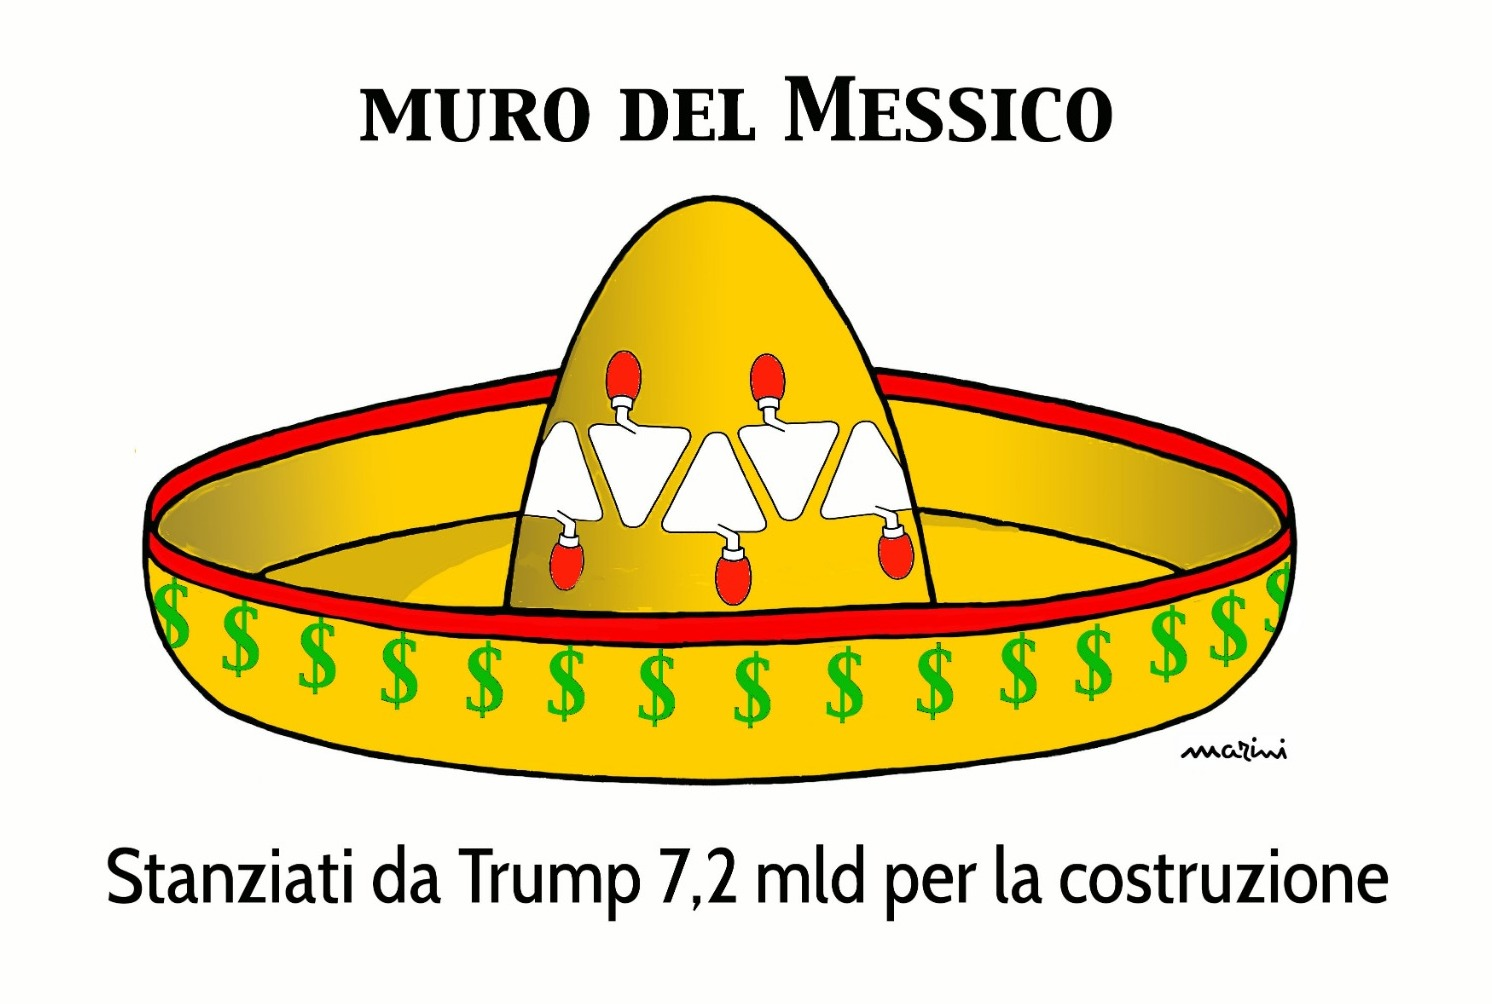 marini messico muro trump